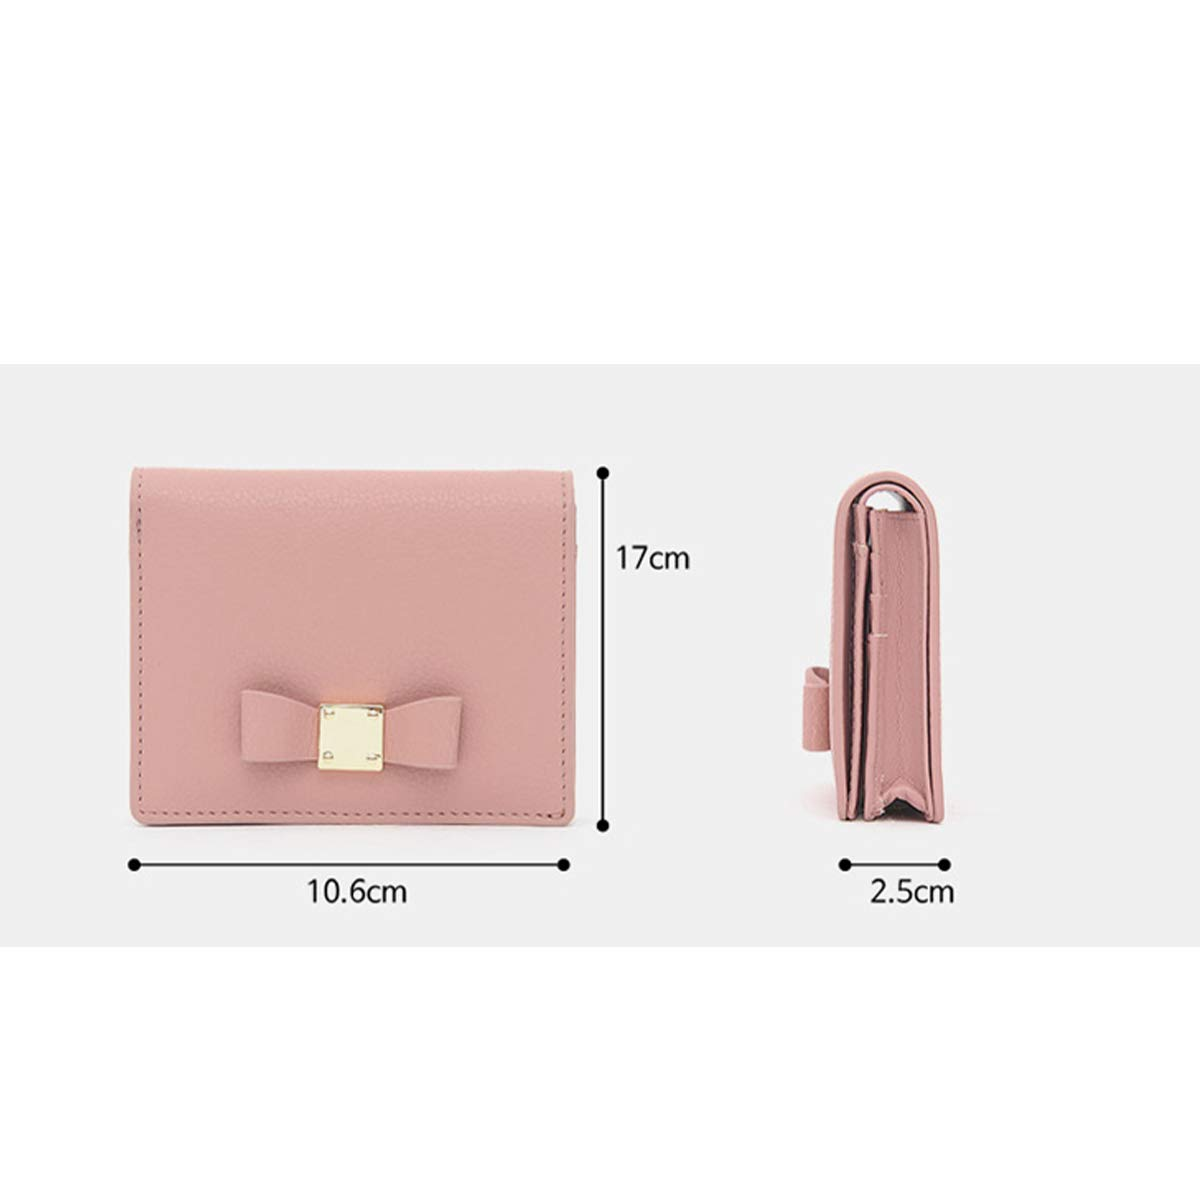 Xingganglengyin FROMb Korea Cute Personality Mini Credit Card ID Bit Small and Simple Business Card Package Multi Card Card Clip Thin Color : Blue